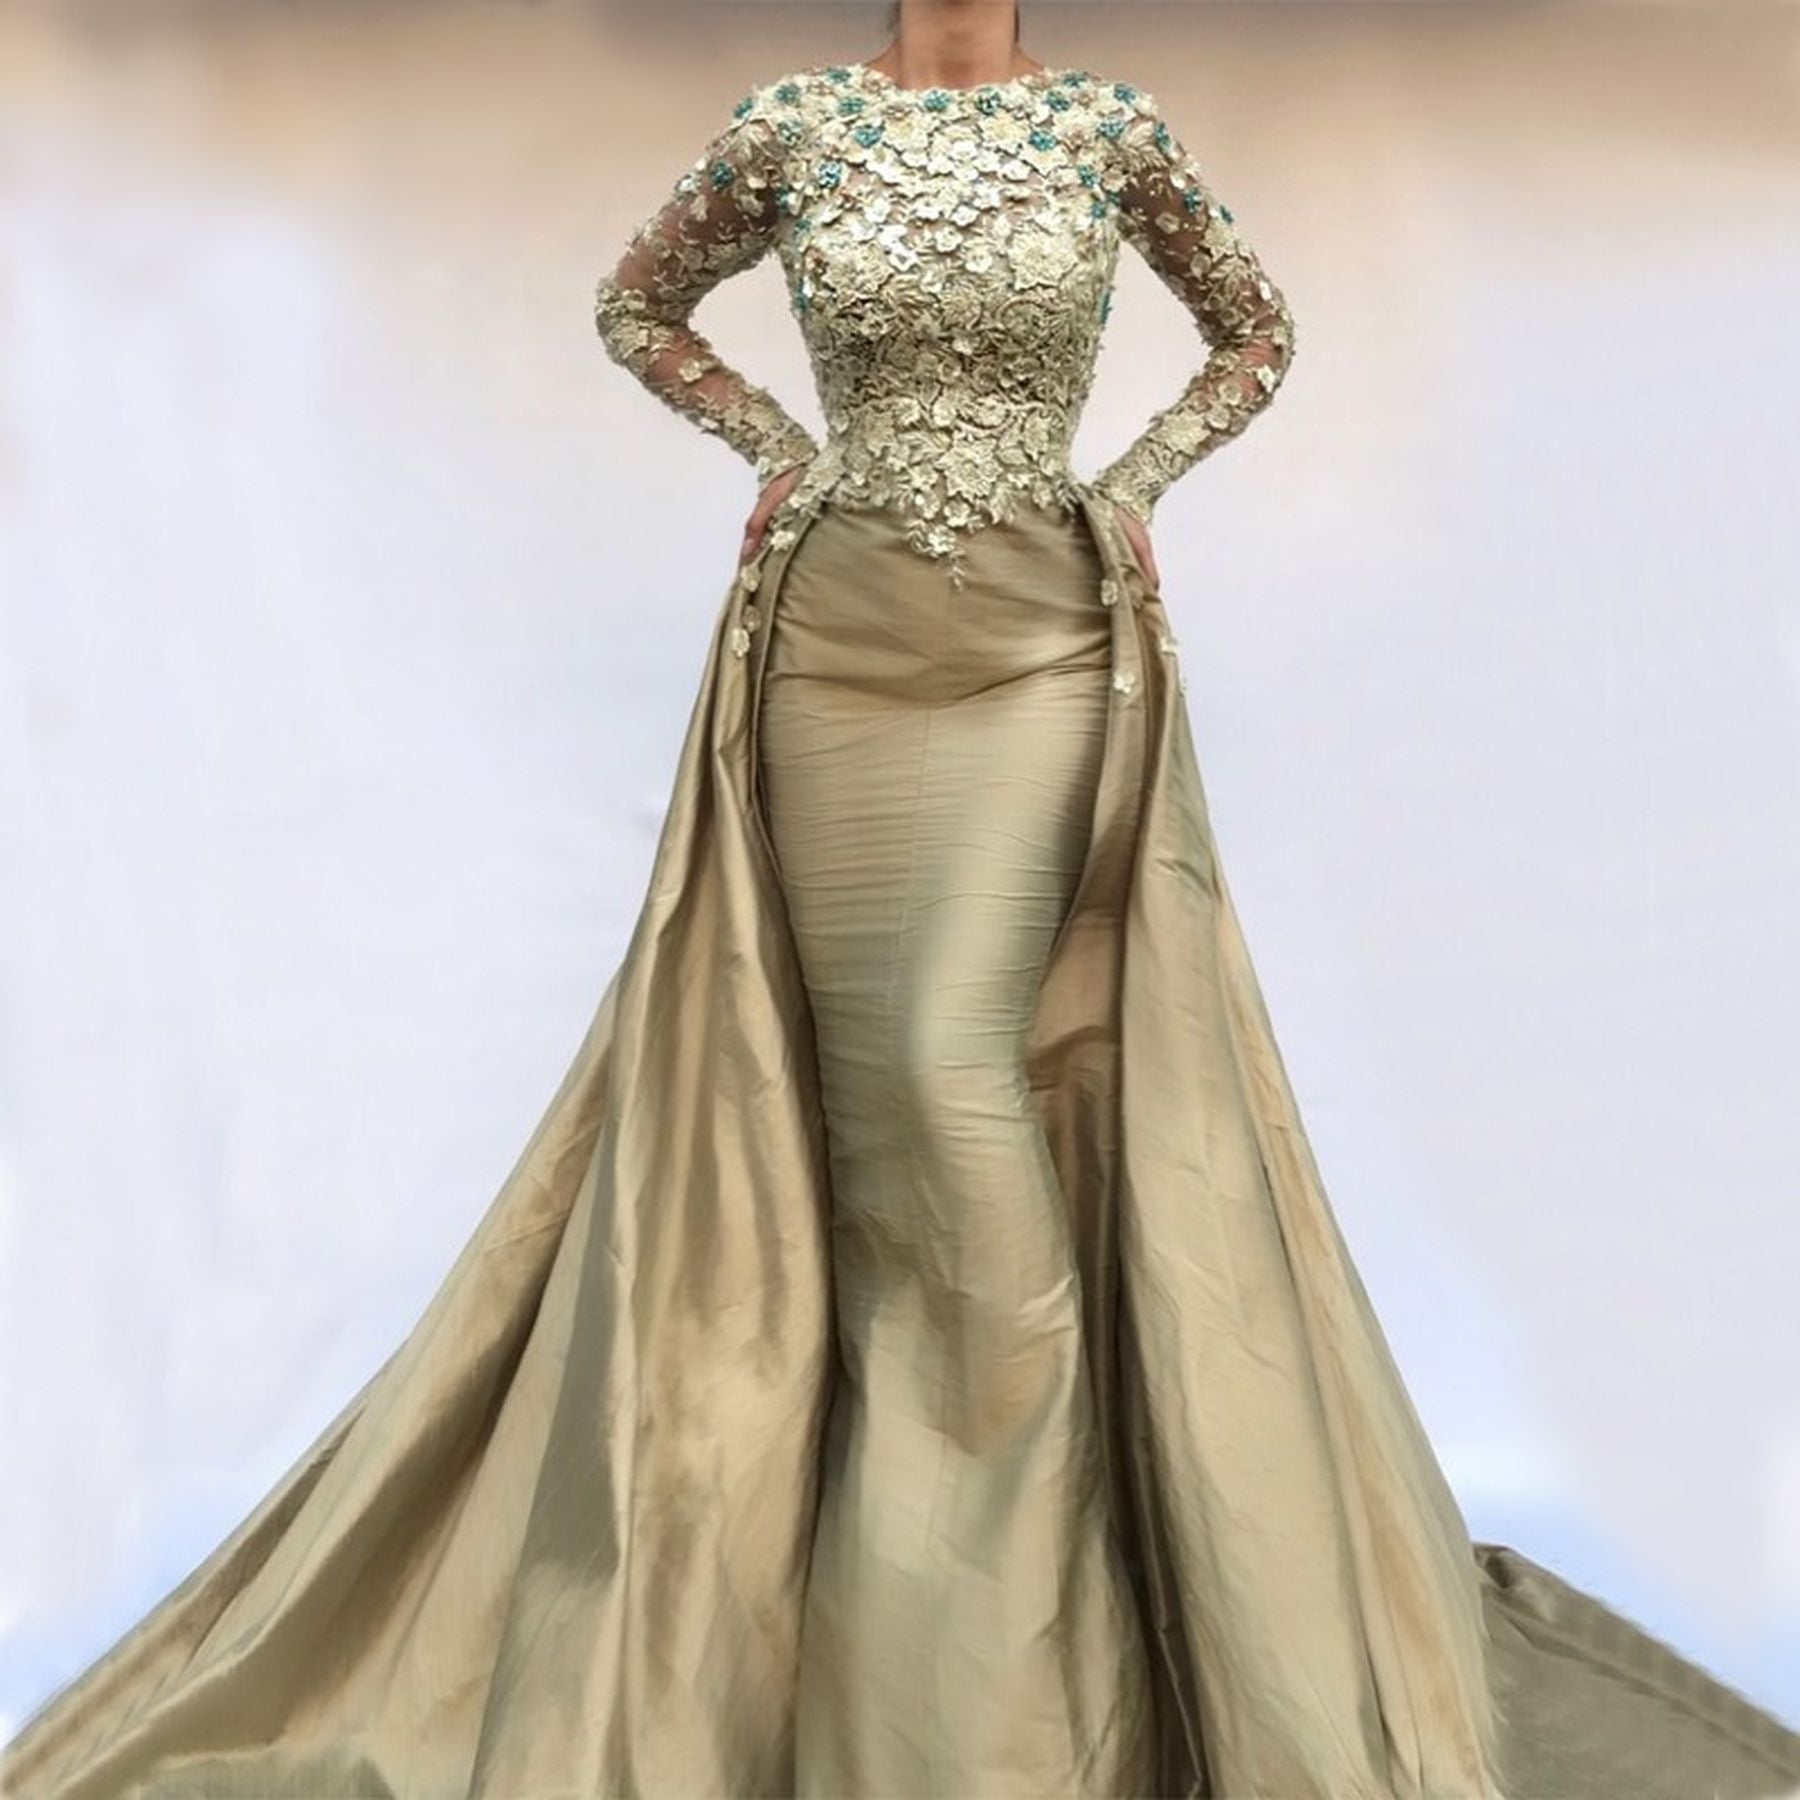 d8d236dc9a Detachable Muslim Evening Dresses Mermaid Long Sleeves Pearls Lace Isl –  Cosplay Infinity